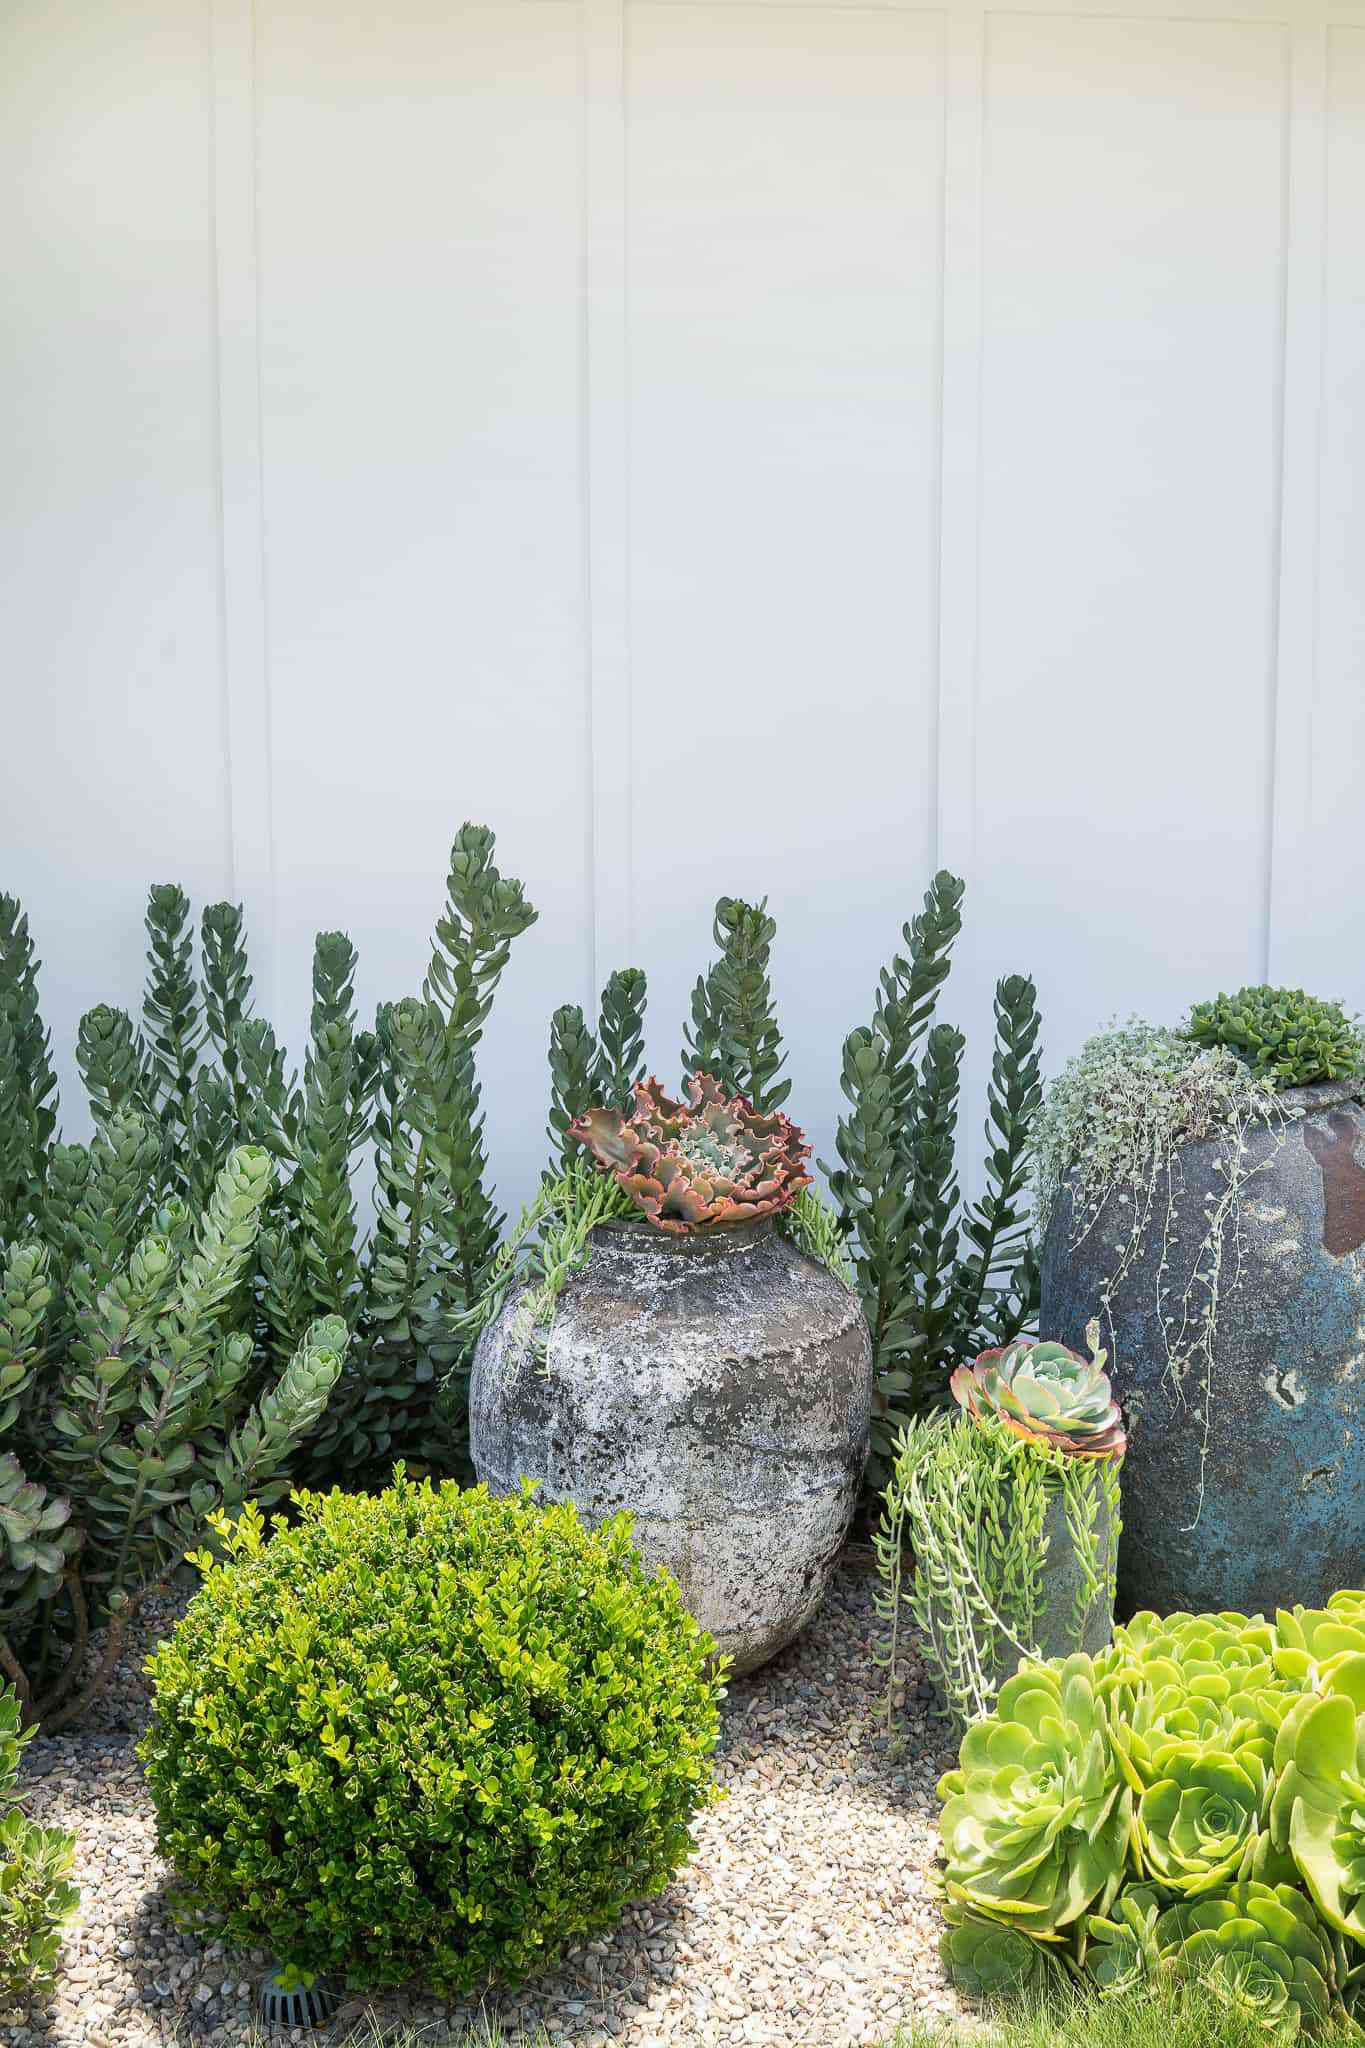 Lawn with succulents and cacti.